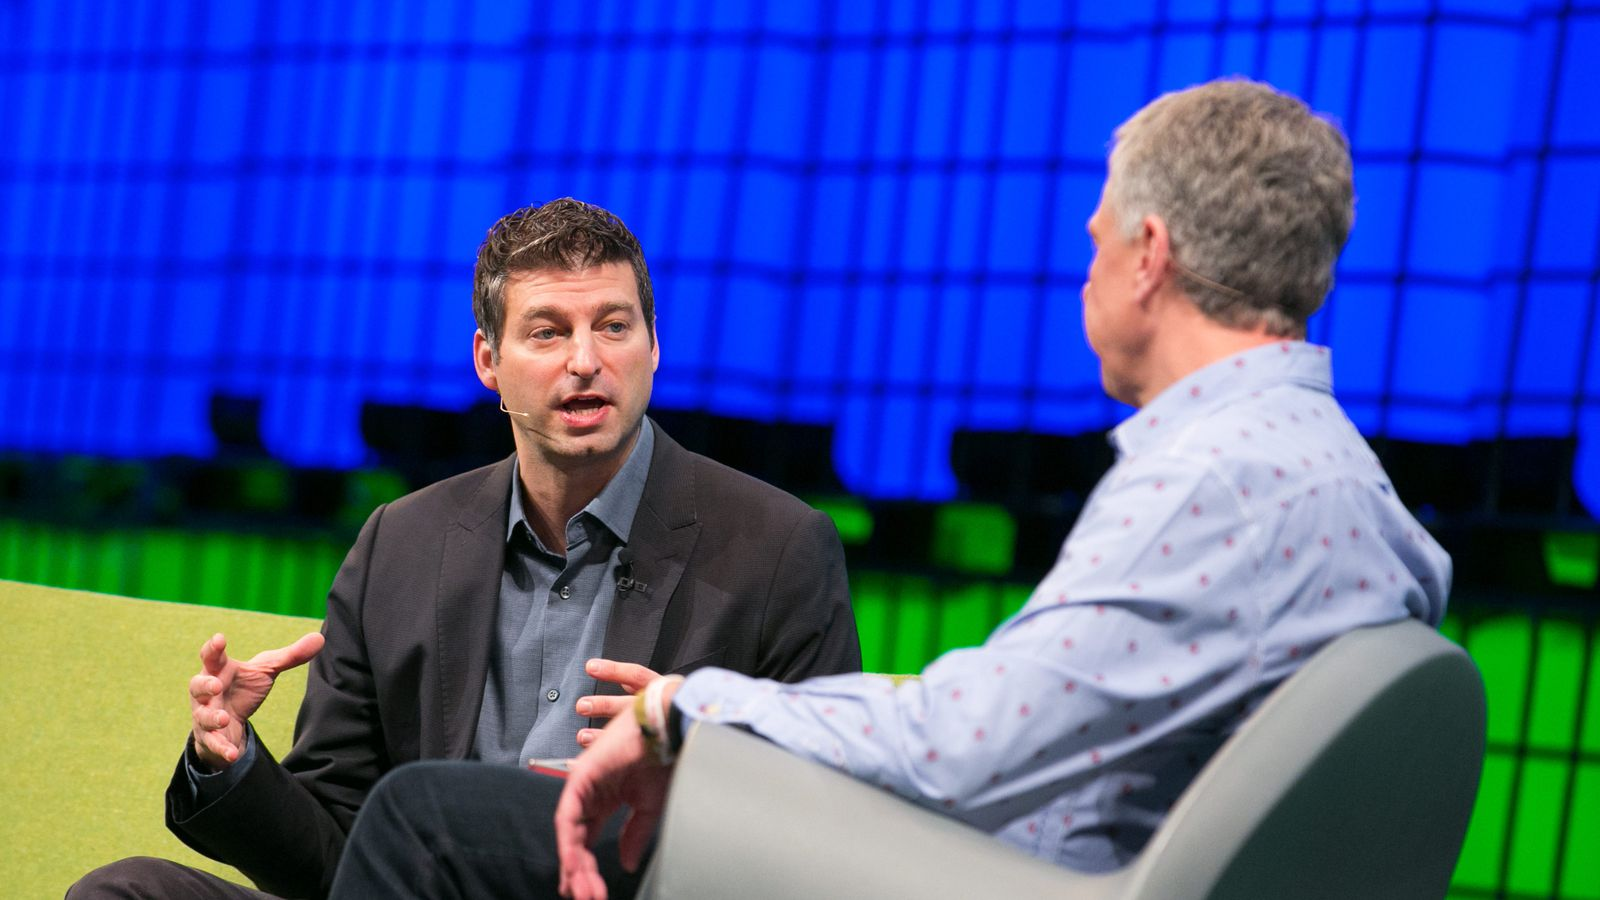 Sneaker enthusiast (and former Twitter COO) Adam Bain joined the board of sneaker startup GOAT